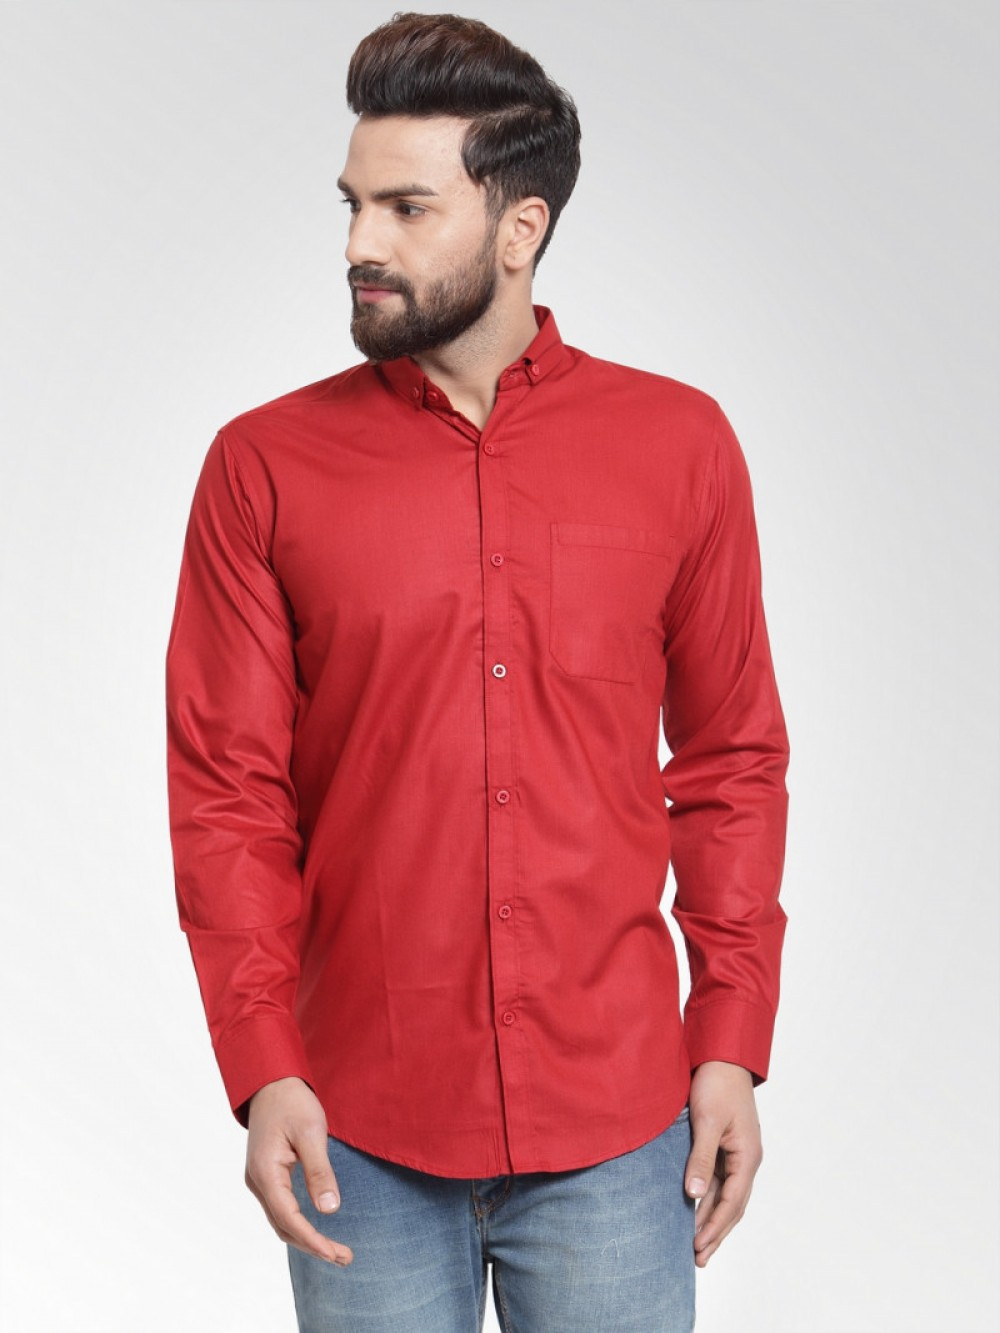 Attractive Maroon Plain Formal Shirt